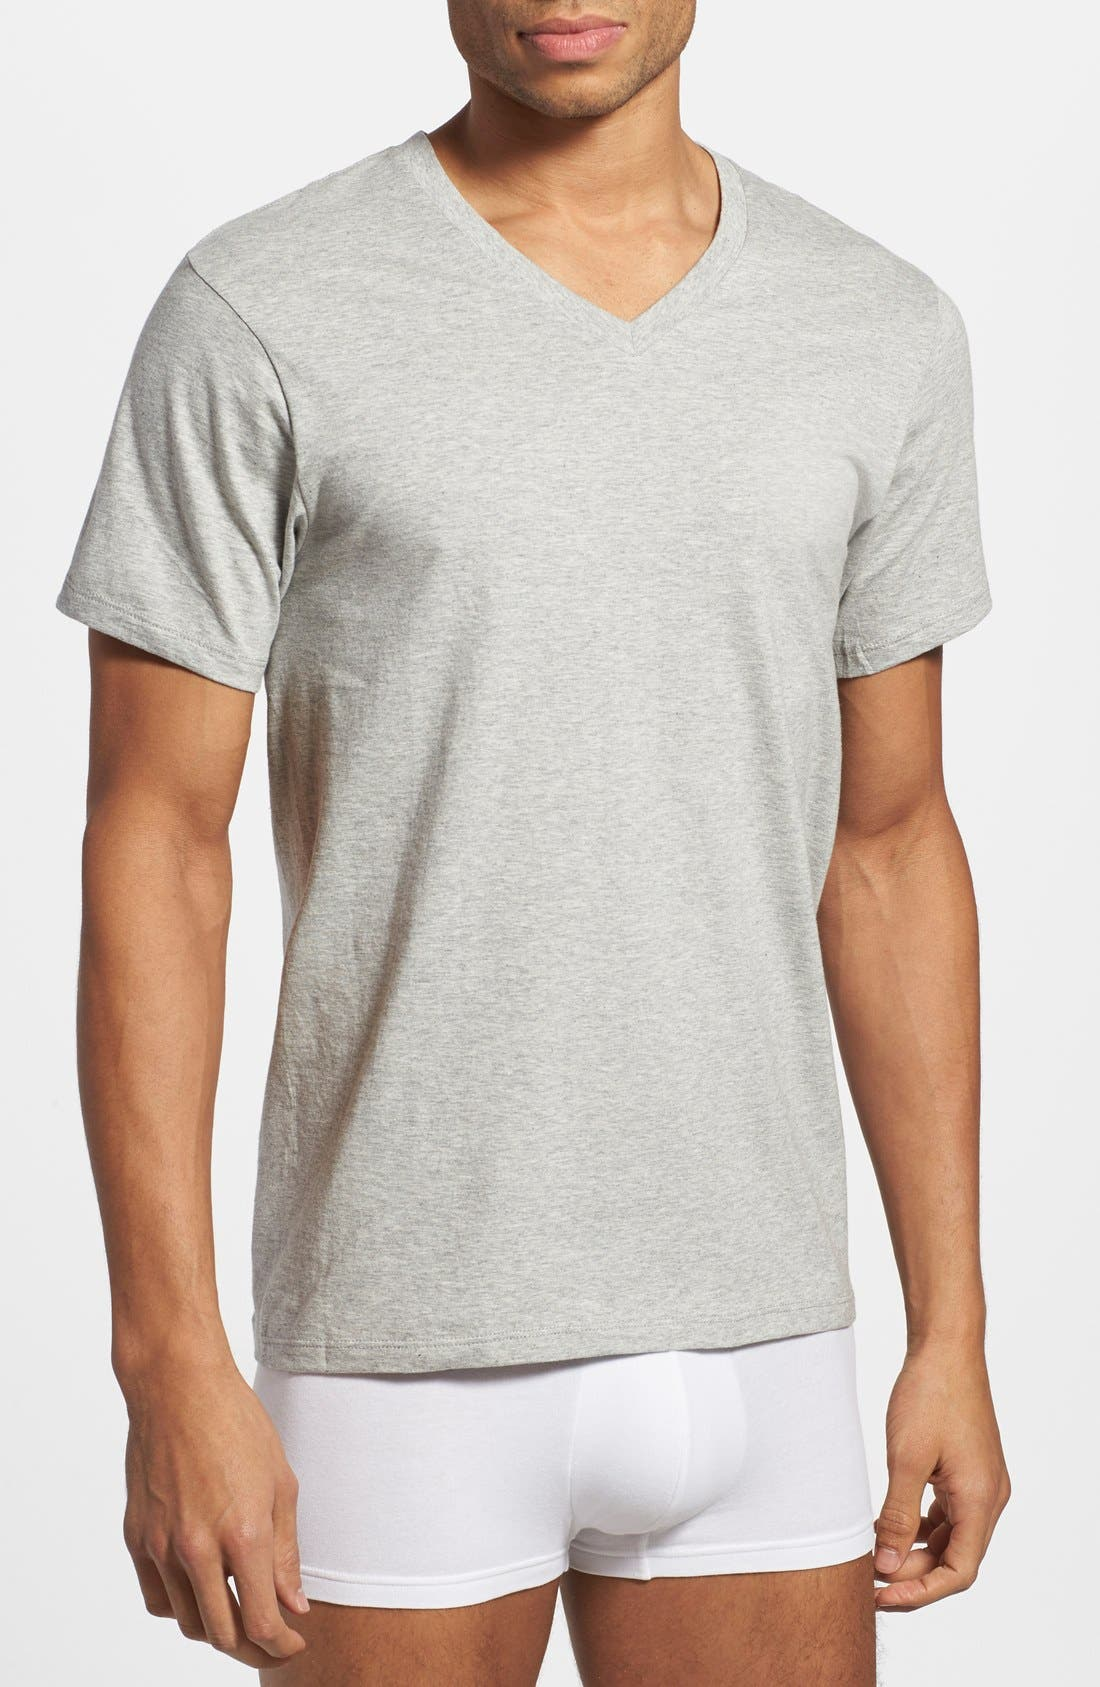 Assorted 3-Pack Classic Fit Cotton V-Neck T-Shirt,                             Alternate thumbnail 2, color,                             Heather Grey/ White/ Black